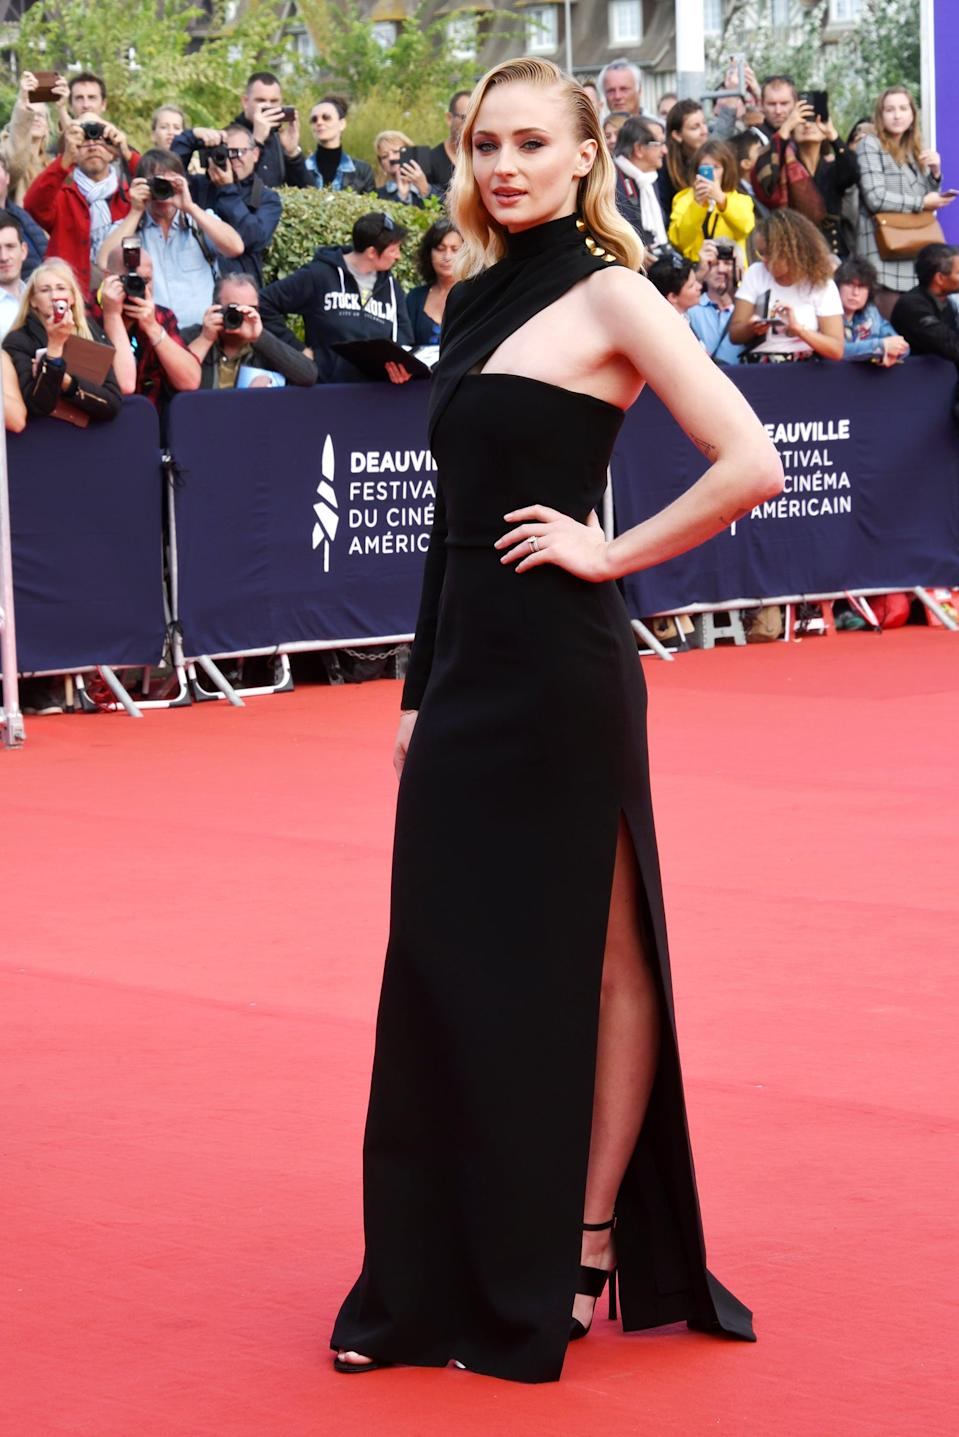 """<p>Sophie attended the 45th Deauville American Film Festival in this sophisticated one-sleeved number with four gold studs at the neckline. She exuded pure glamour with old Hollywood waves and her <a href=""""https://www.popsugar.com/fashion/Sophie-Turner-Engagement-Ring-44145435"""" class=""""link rapid-noclick-resp"""" rel=""""nofollow noopener"""" target=""""_blank"""" data-ylk=""""slk:engagement ring"""">engagement ring</a> stack.</p>"""